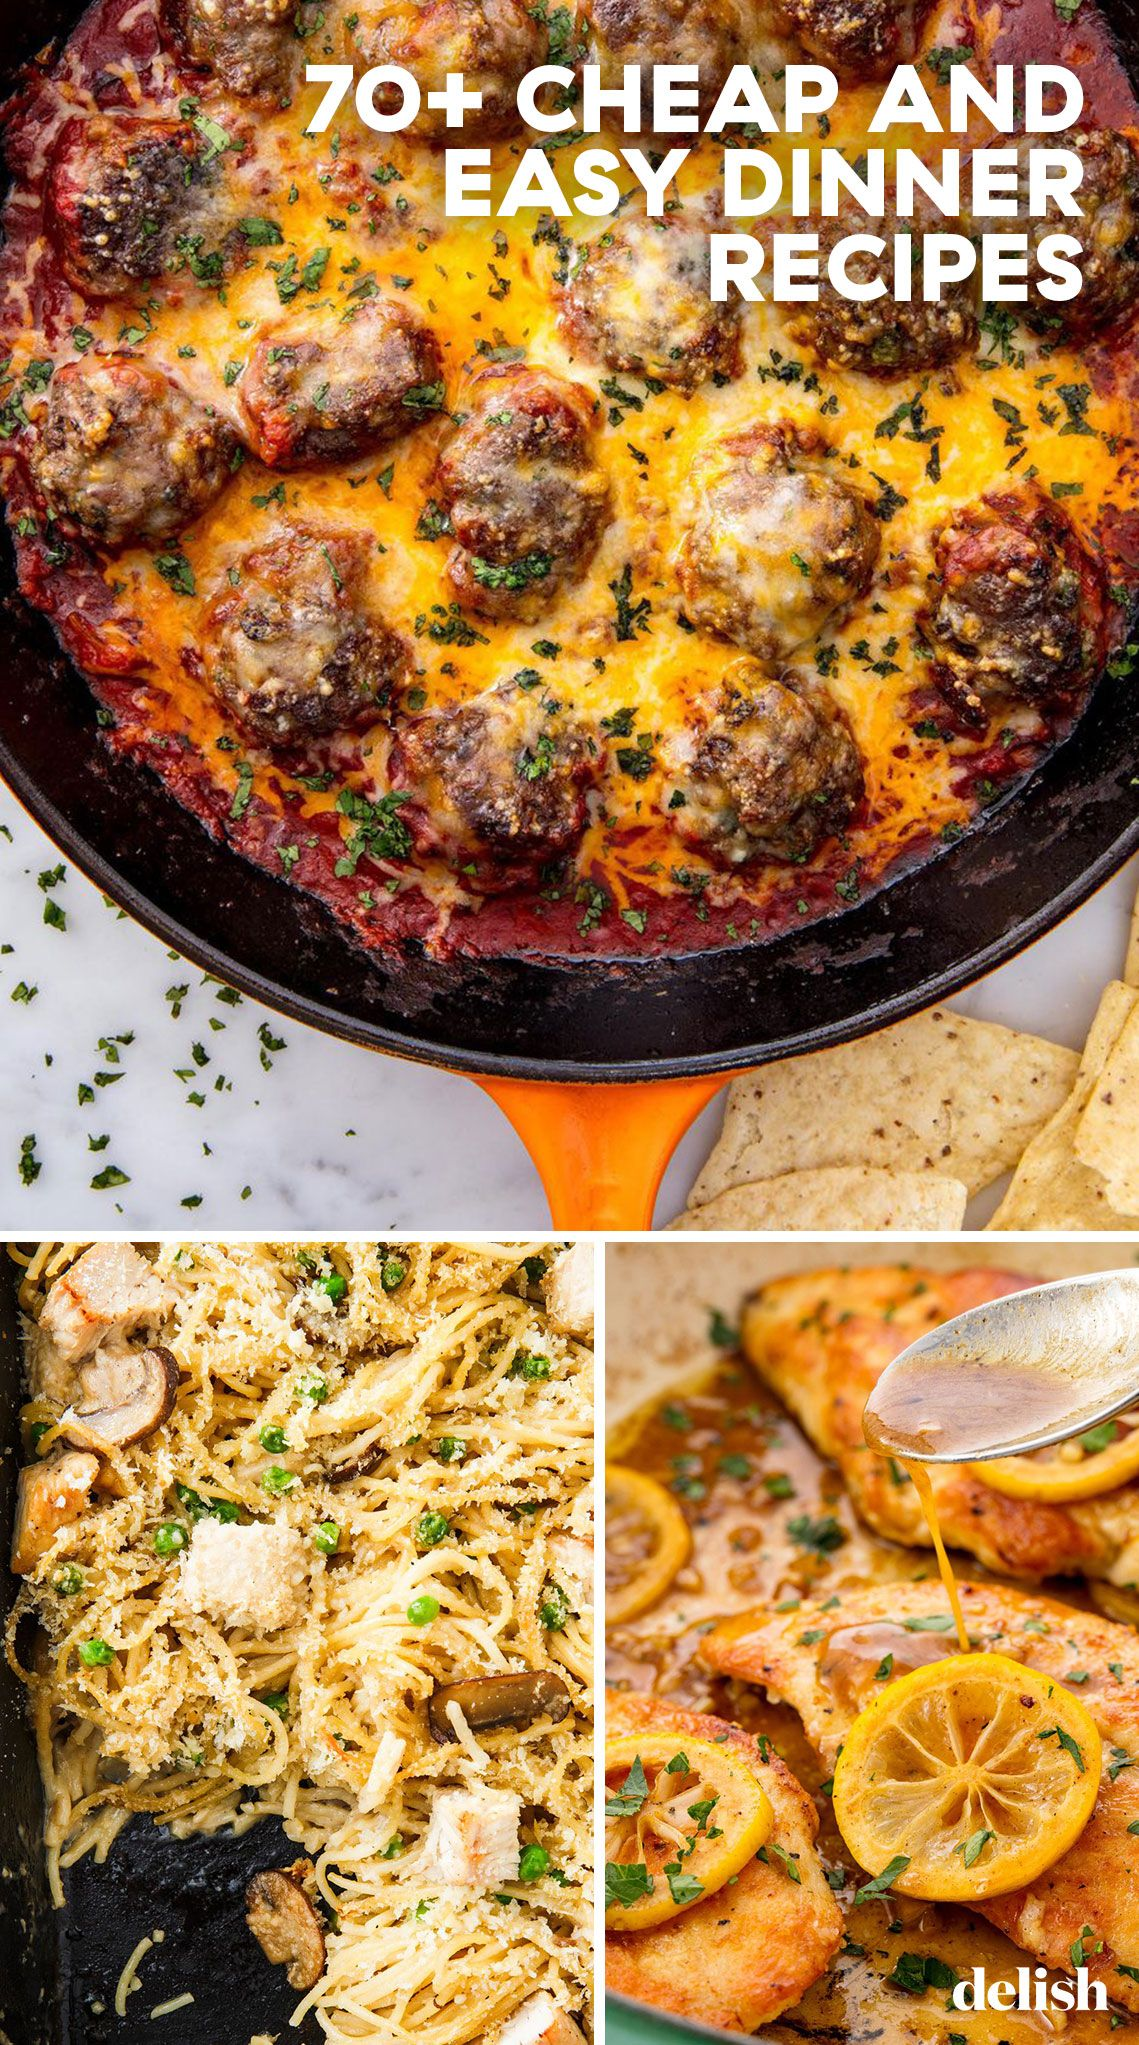 75+ Easy Cheap Dinner Recipes , Inexpensive Dinner Ideas